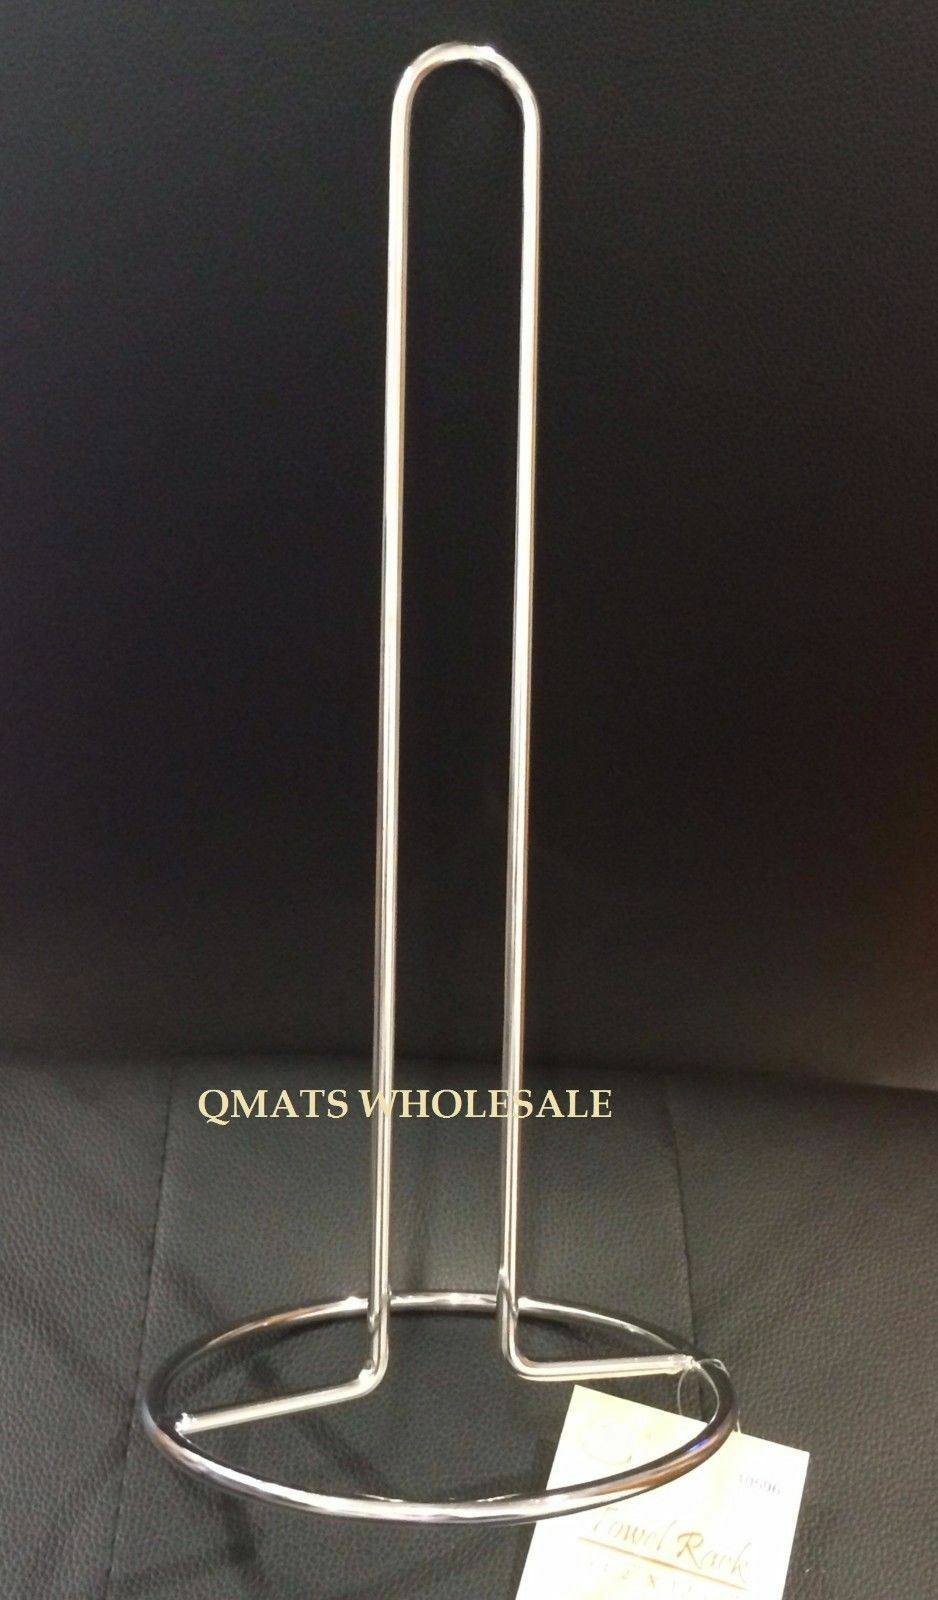 NEW CHROME KITCHEN PAPER TOWEL HOLDER STAND RACK WHOLESALE